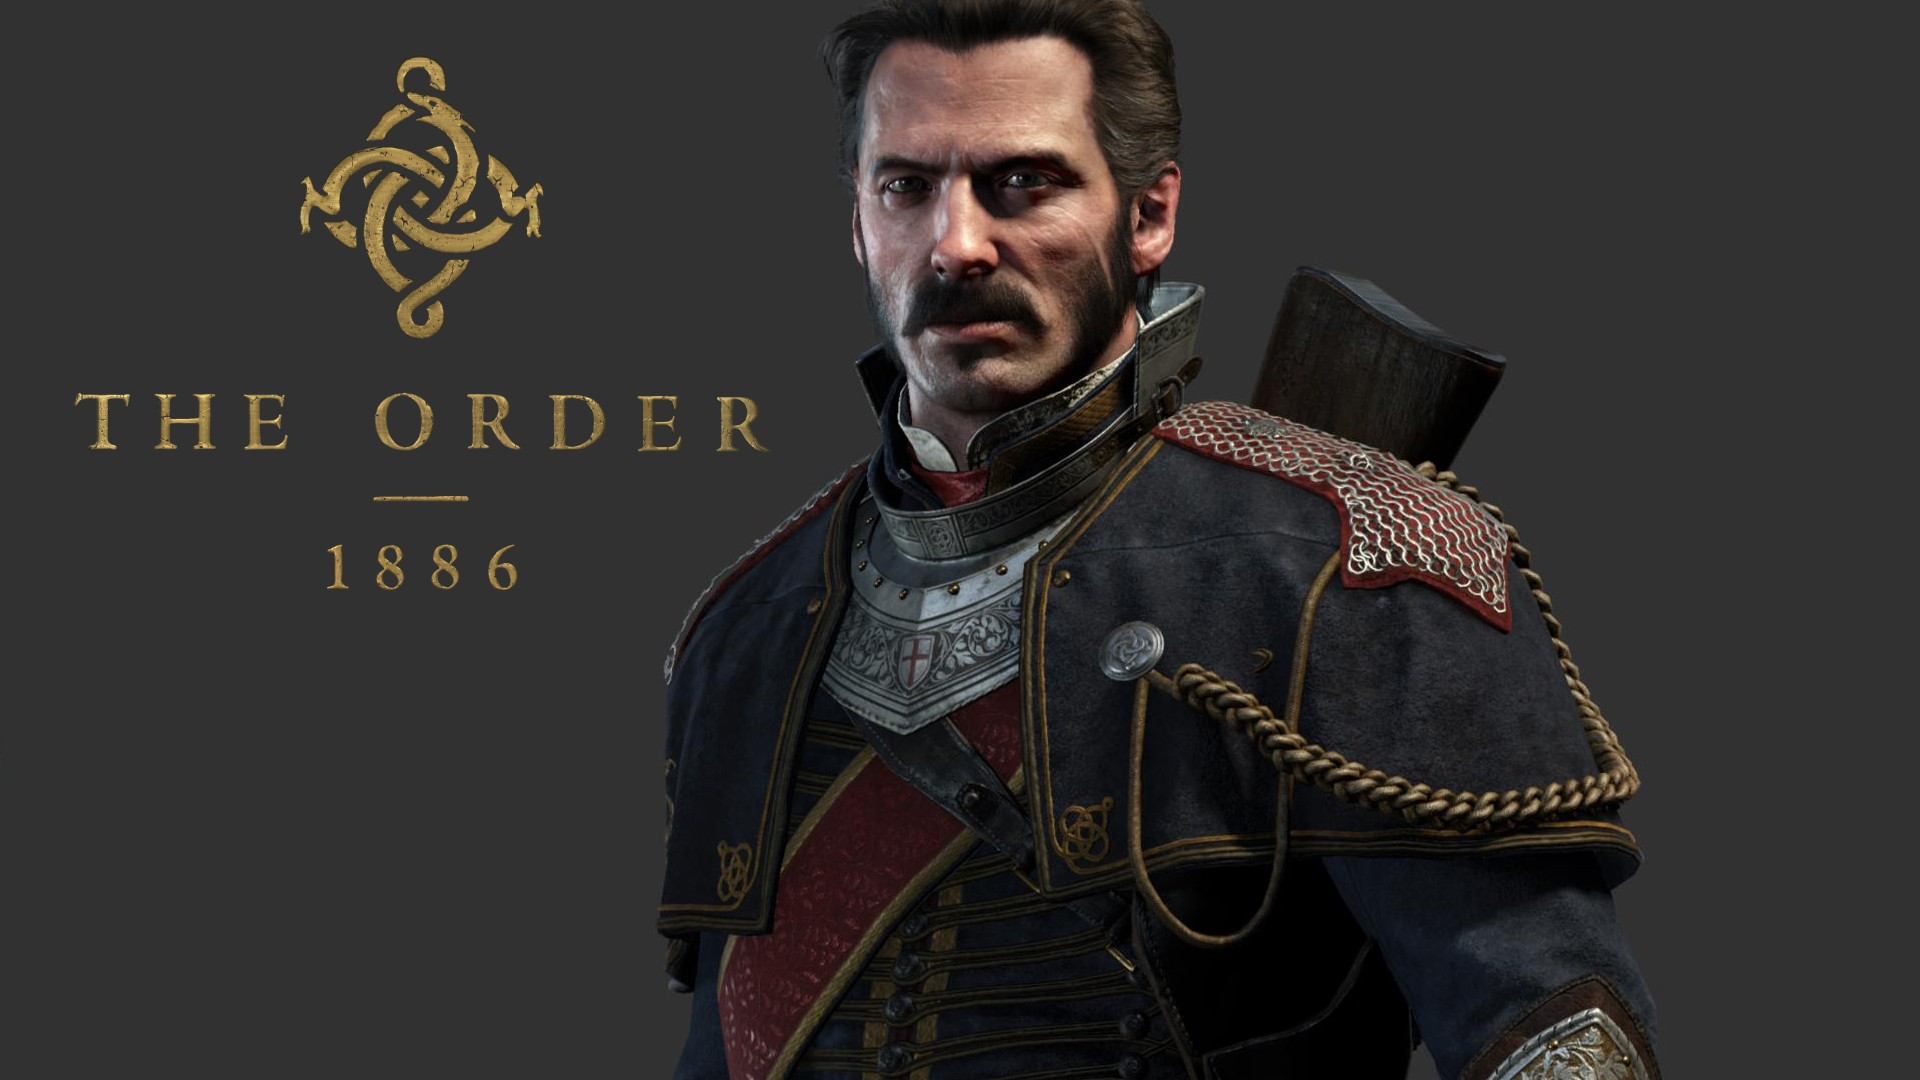 Wolfenstein Hd Wallpapers 8 Hd The Order 1886 Wallpapers Hdwallsource Com